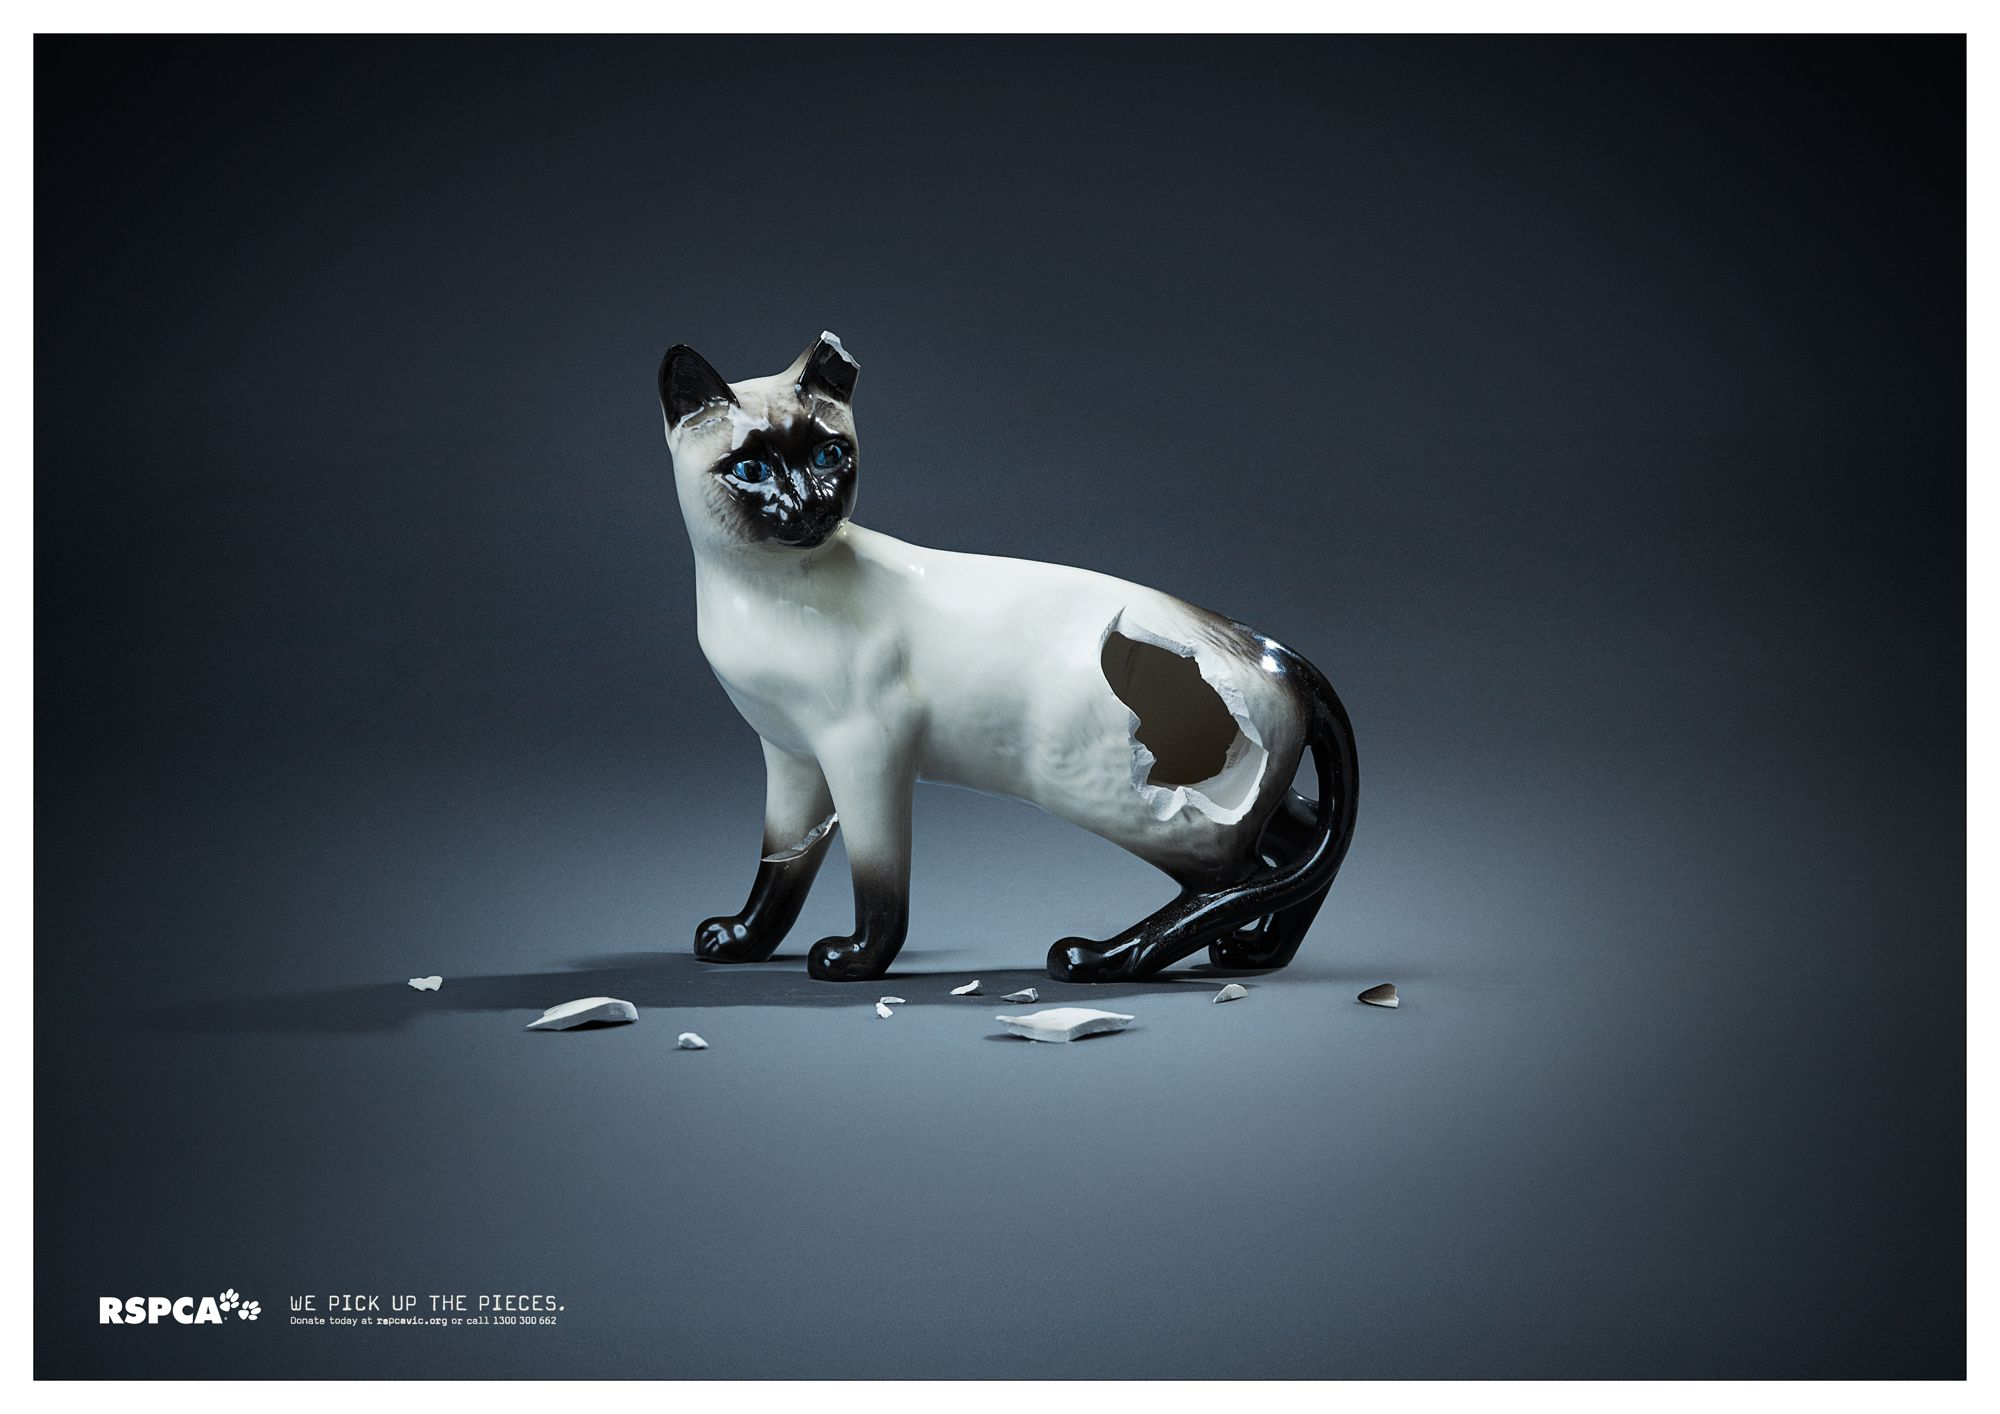 Evocative print ad from the RSPCA cats marketing